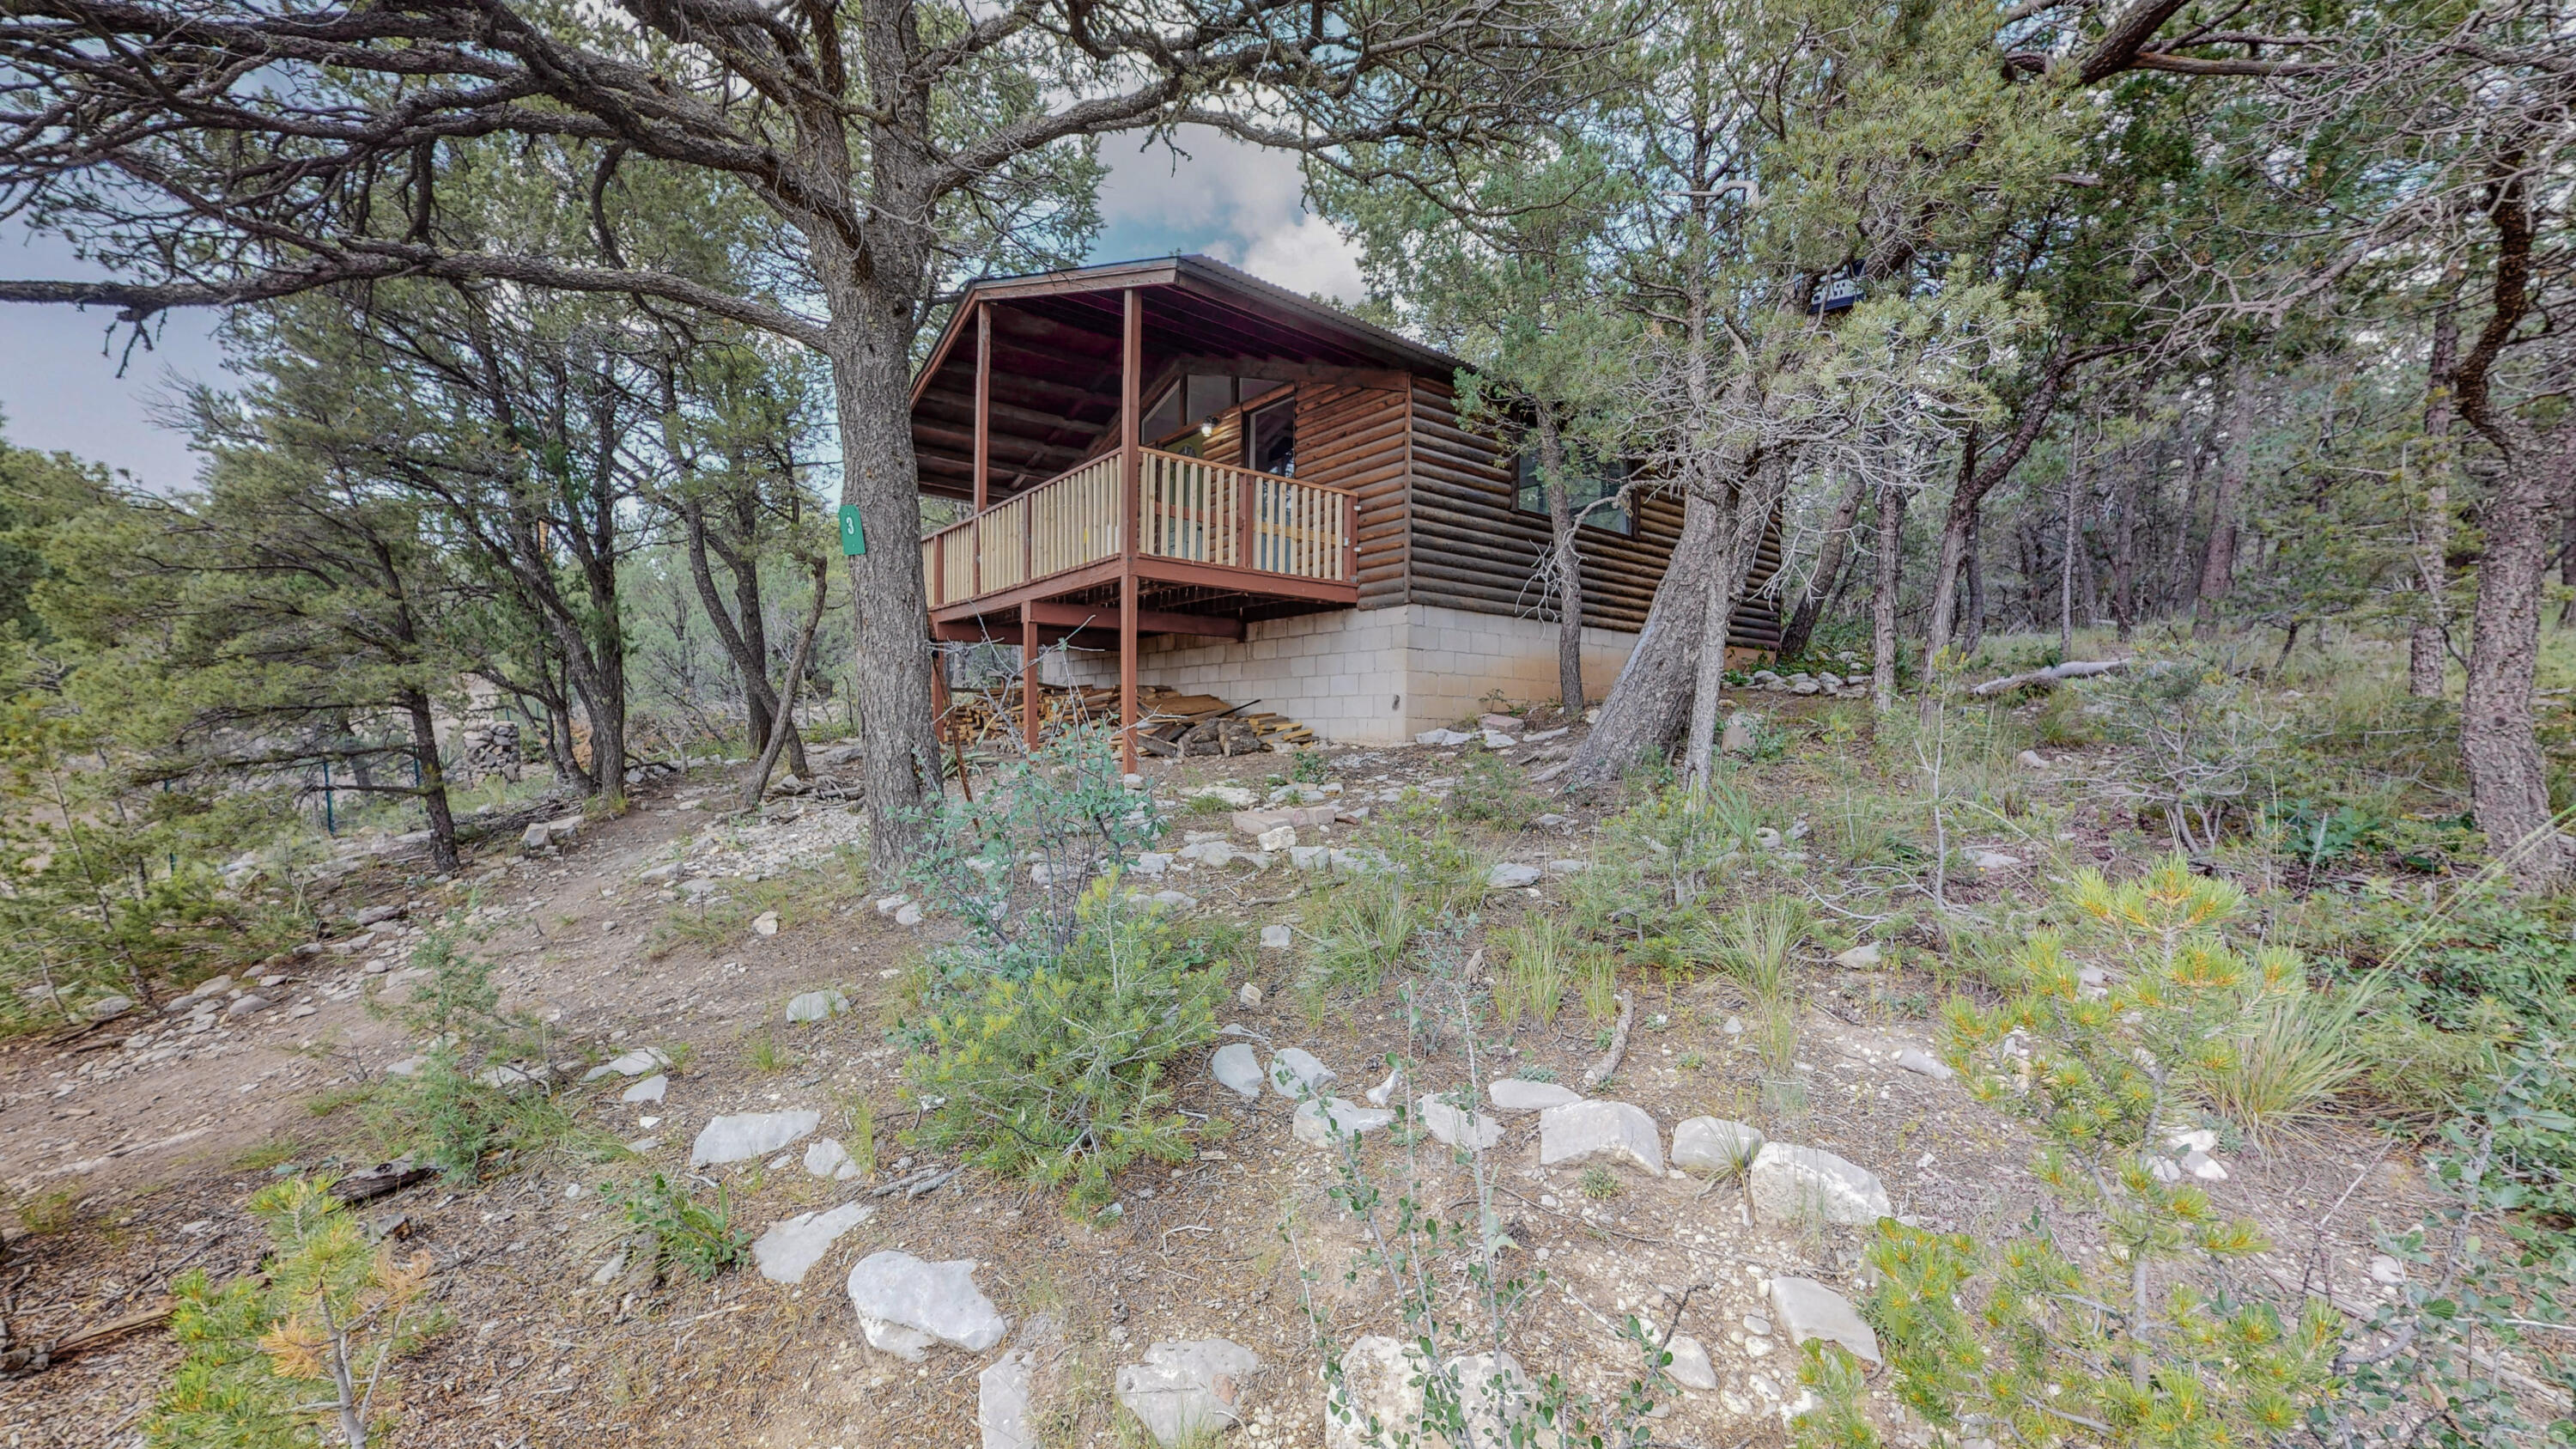 Fantasize about getting away to a private cabin on 2.4 acres of serene, forested land this weekend? YOU CAN!  Secluded, accessible and affordable, this cabin has been meticulously rebuilt. Updated electrical panel, new flooring, bathroom remodel, wood stove for plenty of heat, and a renovated kitchen area complete with custom wood countertop. Enjoy coffee or a night cap from your west facing balcony, cozy up with a book or explore the woods. Cabin is on Septic System and water source is hauled water with brand new tank and pump. All permits have been obtained for the rebuild. Owner is also selling adjacent lot and home at 2 Swallow, and both could be purchased and combined to make this your ultimate move to the East Mountains. Would also make a trendy Airbnb! 1k Allowance to finish shower!